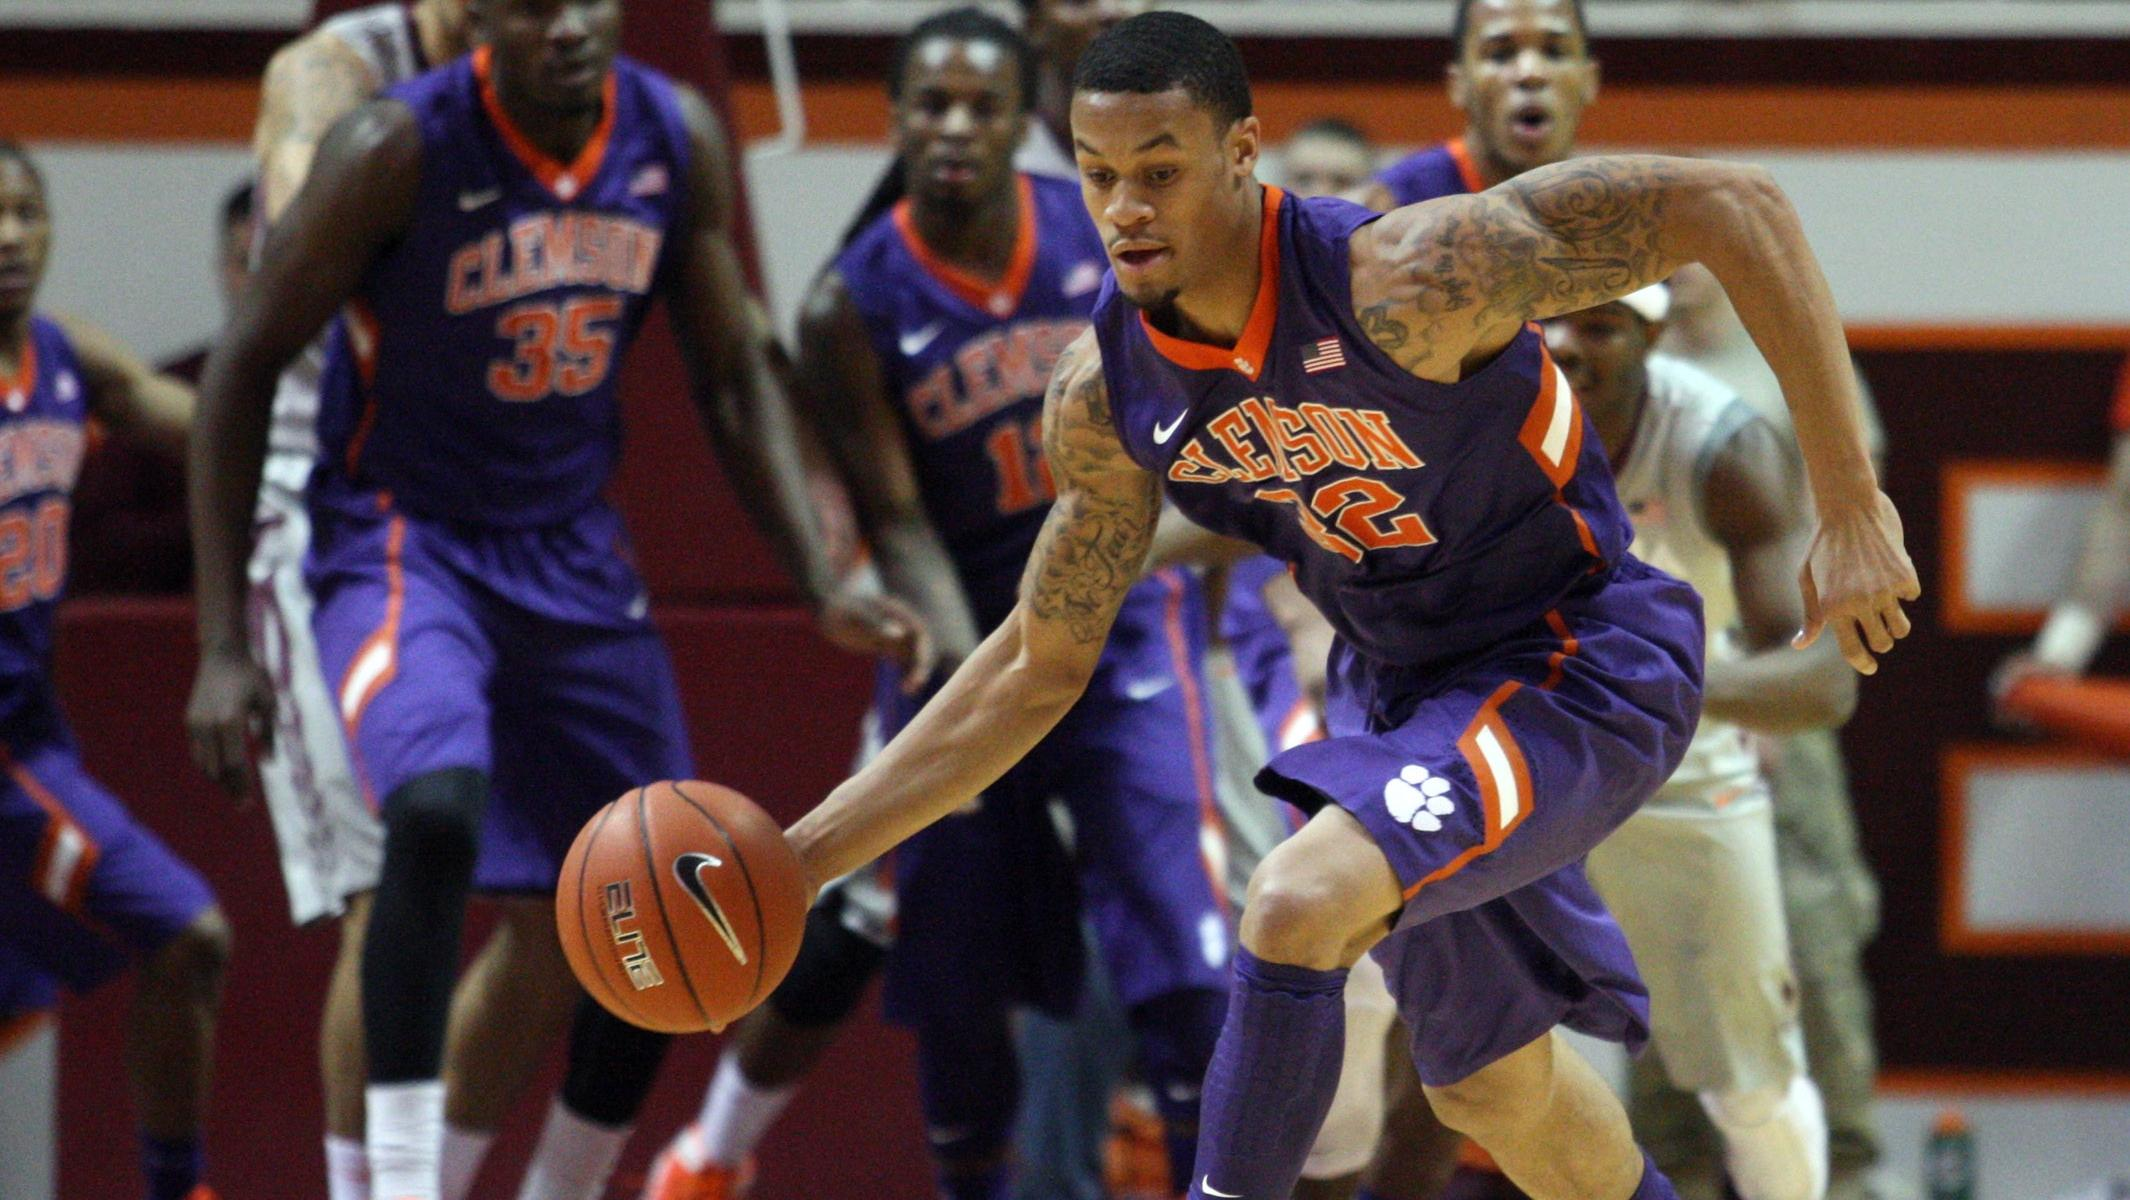 Clemson Nabs Third ACC Road Win, Beats Florida State 53-49 in Tallahassee